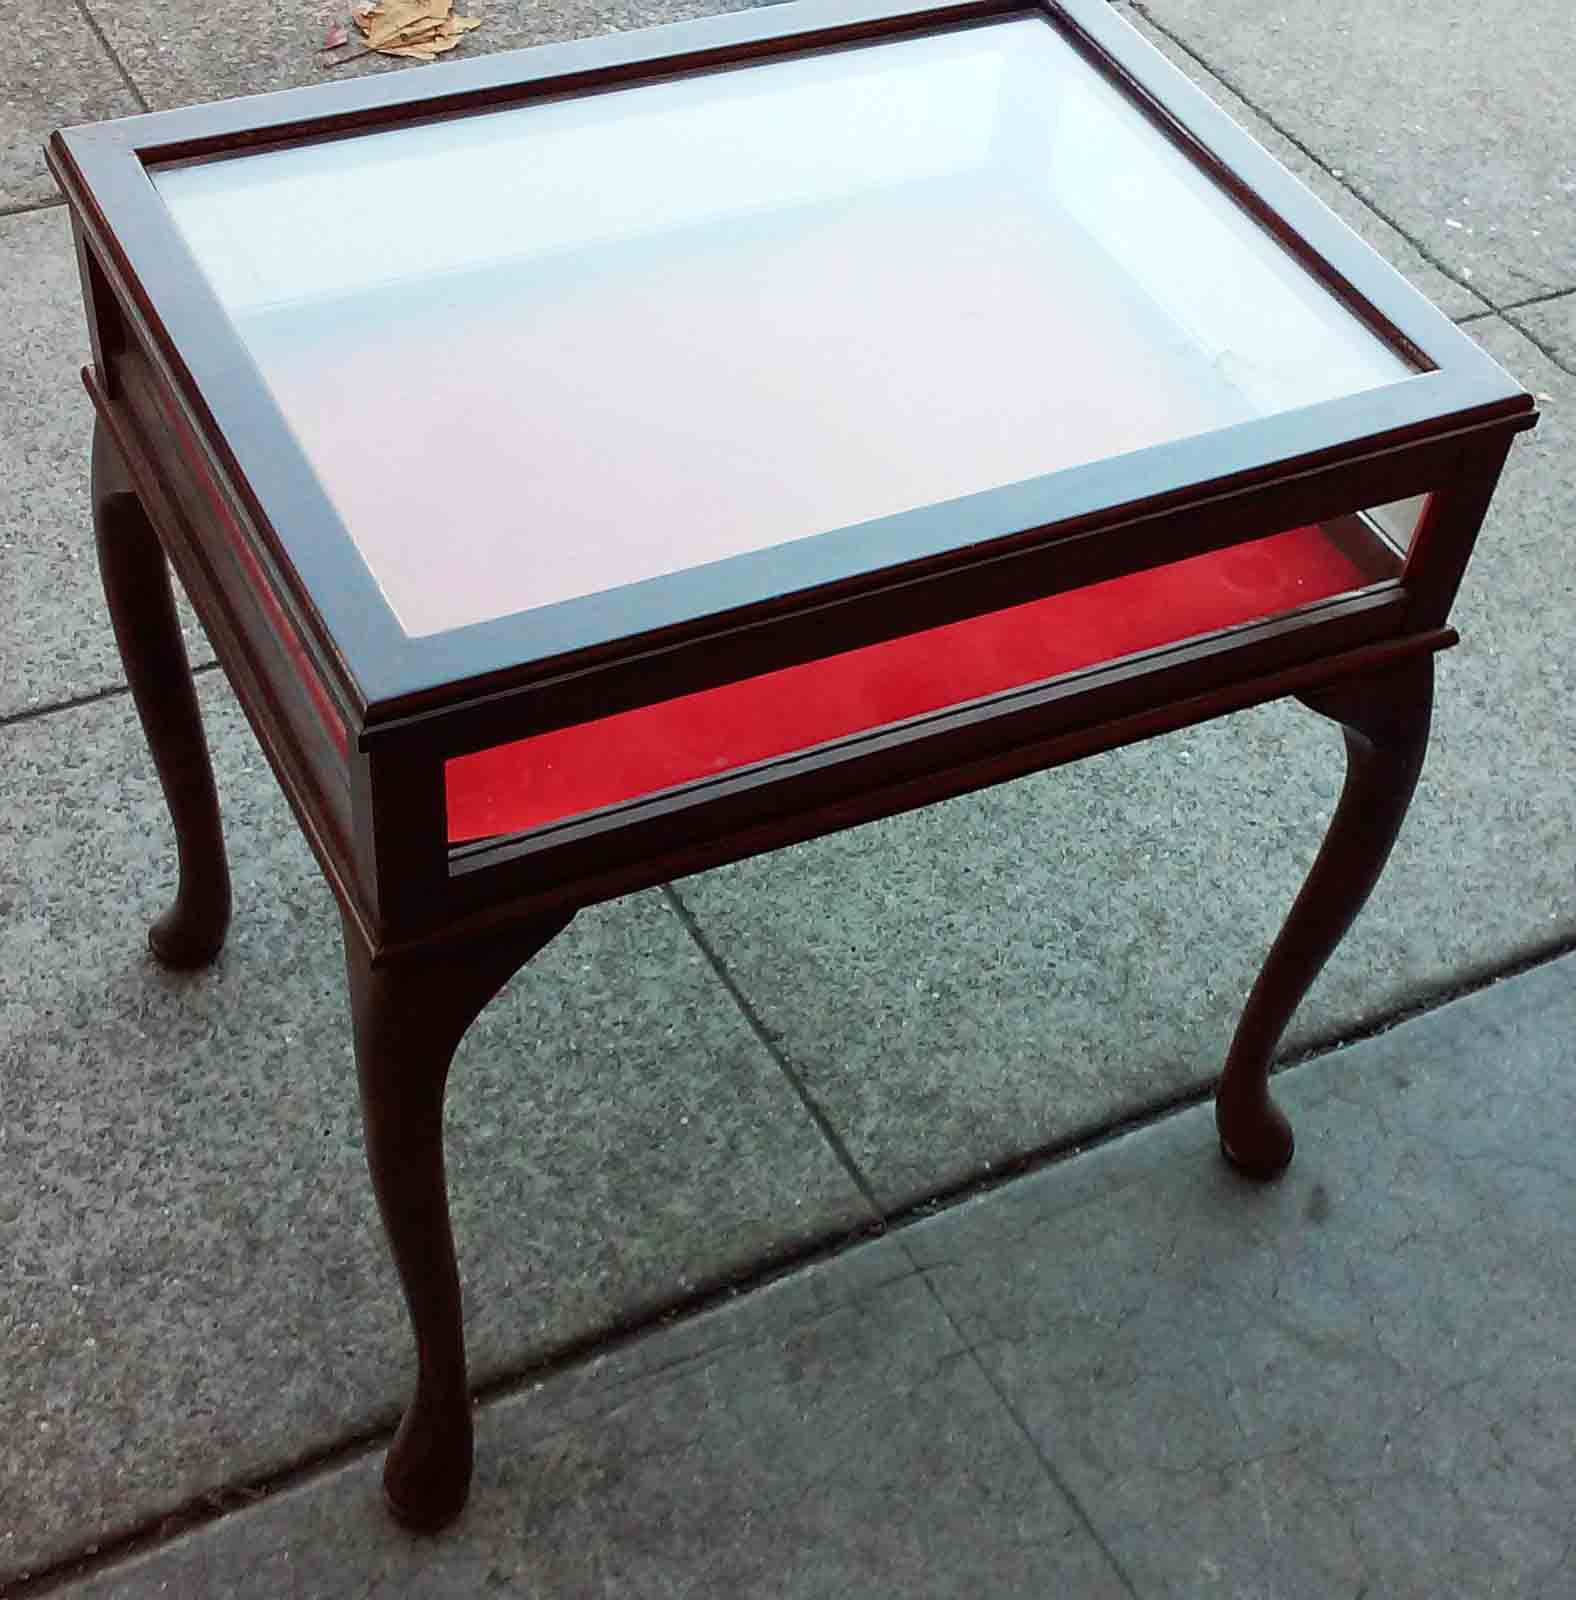 Display Case End Table Uhuru Furniture And Collectibles Sold Display Case End